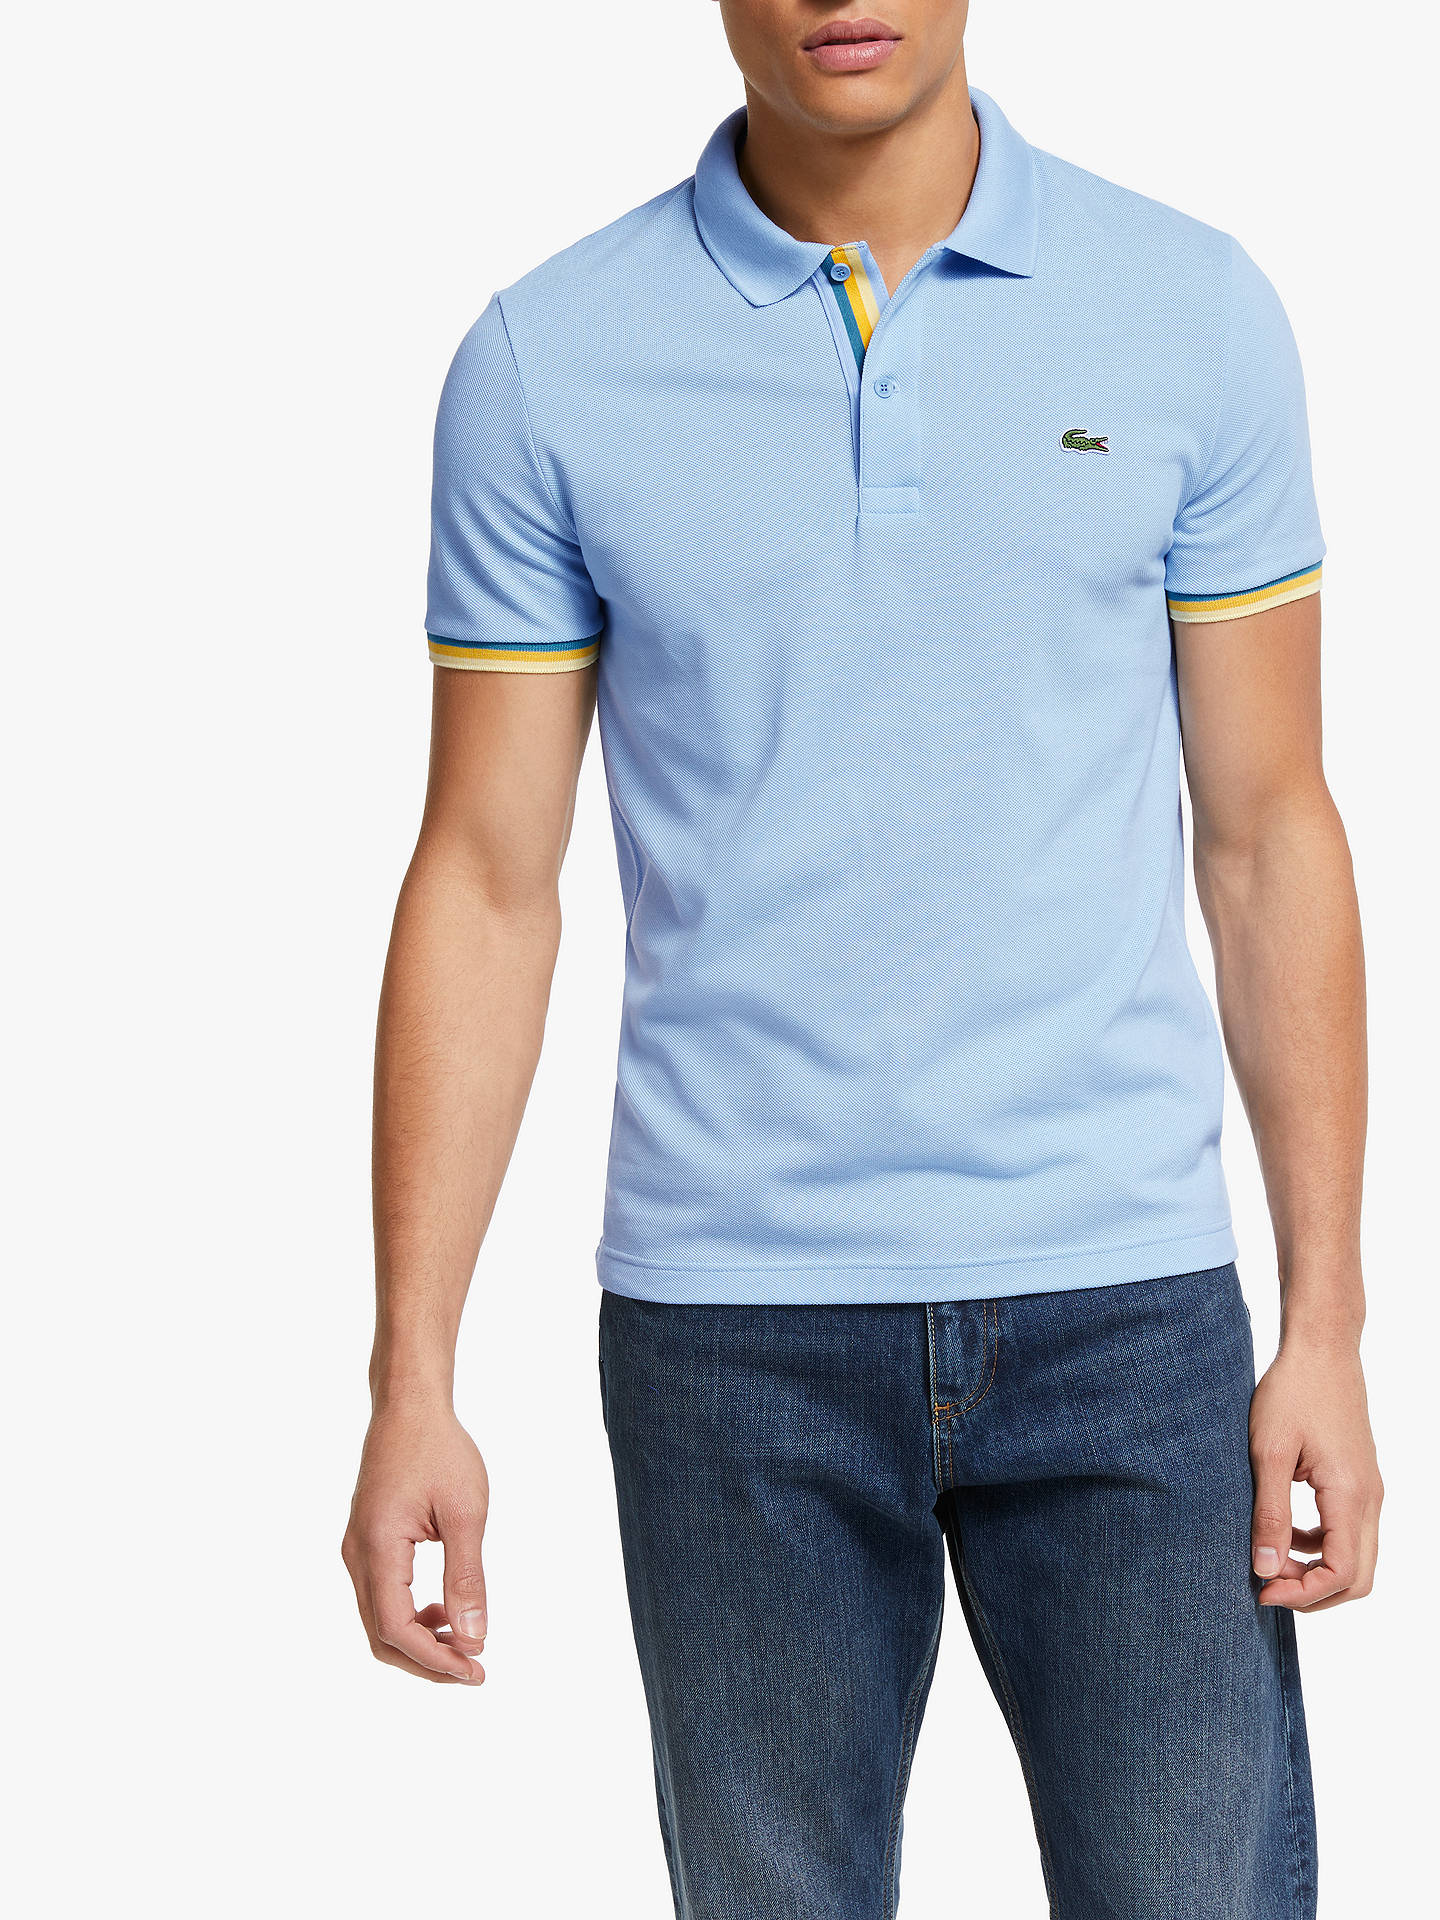 0d82a51ff5 Buy Lacoste Tipped Short Sleeve Polo Shirt, Blue, XL Online at  johnlewis.com ...